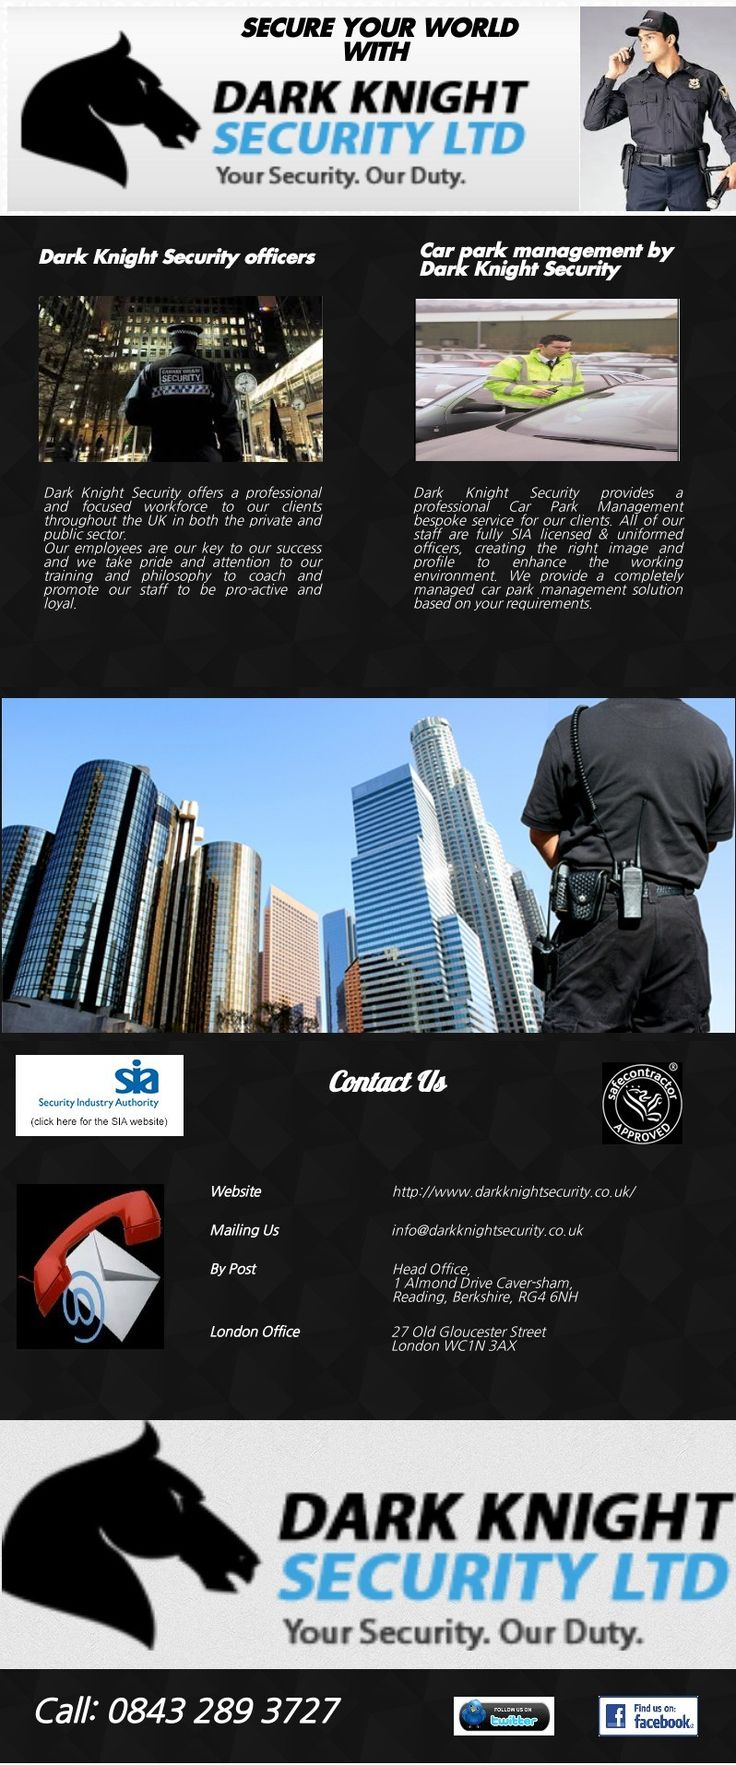 Dark Knight Security Limited are fully licensed by the SIA (Security Industry Authority), trained to the highest standards and routinely put through re-testing and extra training. Dark Knight Security is pleased to offer a free security audit, with no obligation to book our SIA security guard services.